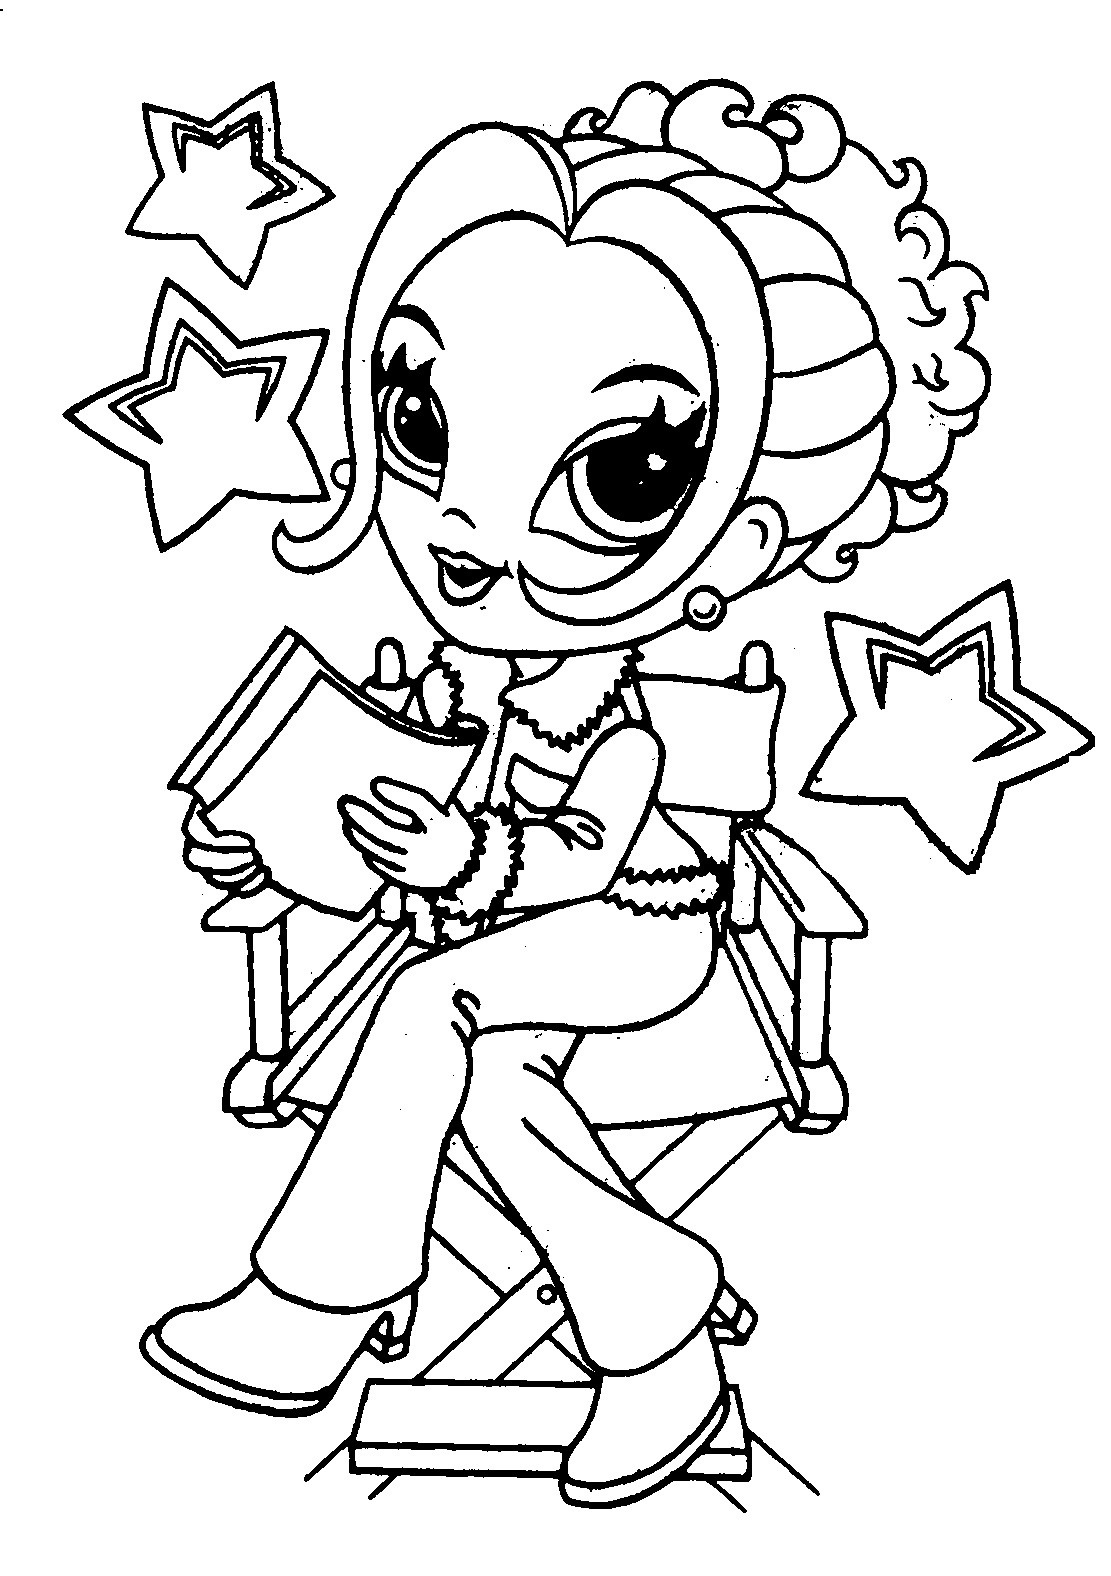 Coloring Pages For Girls (6)